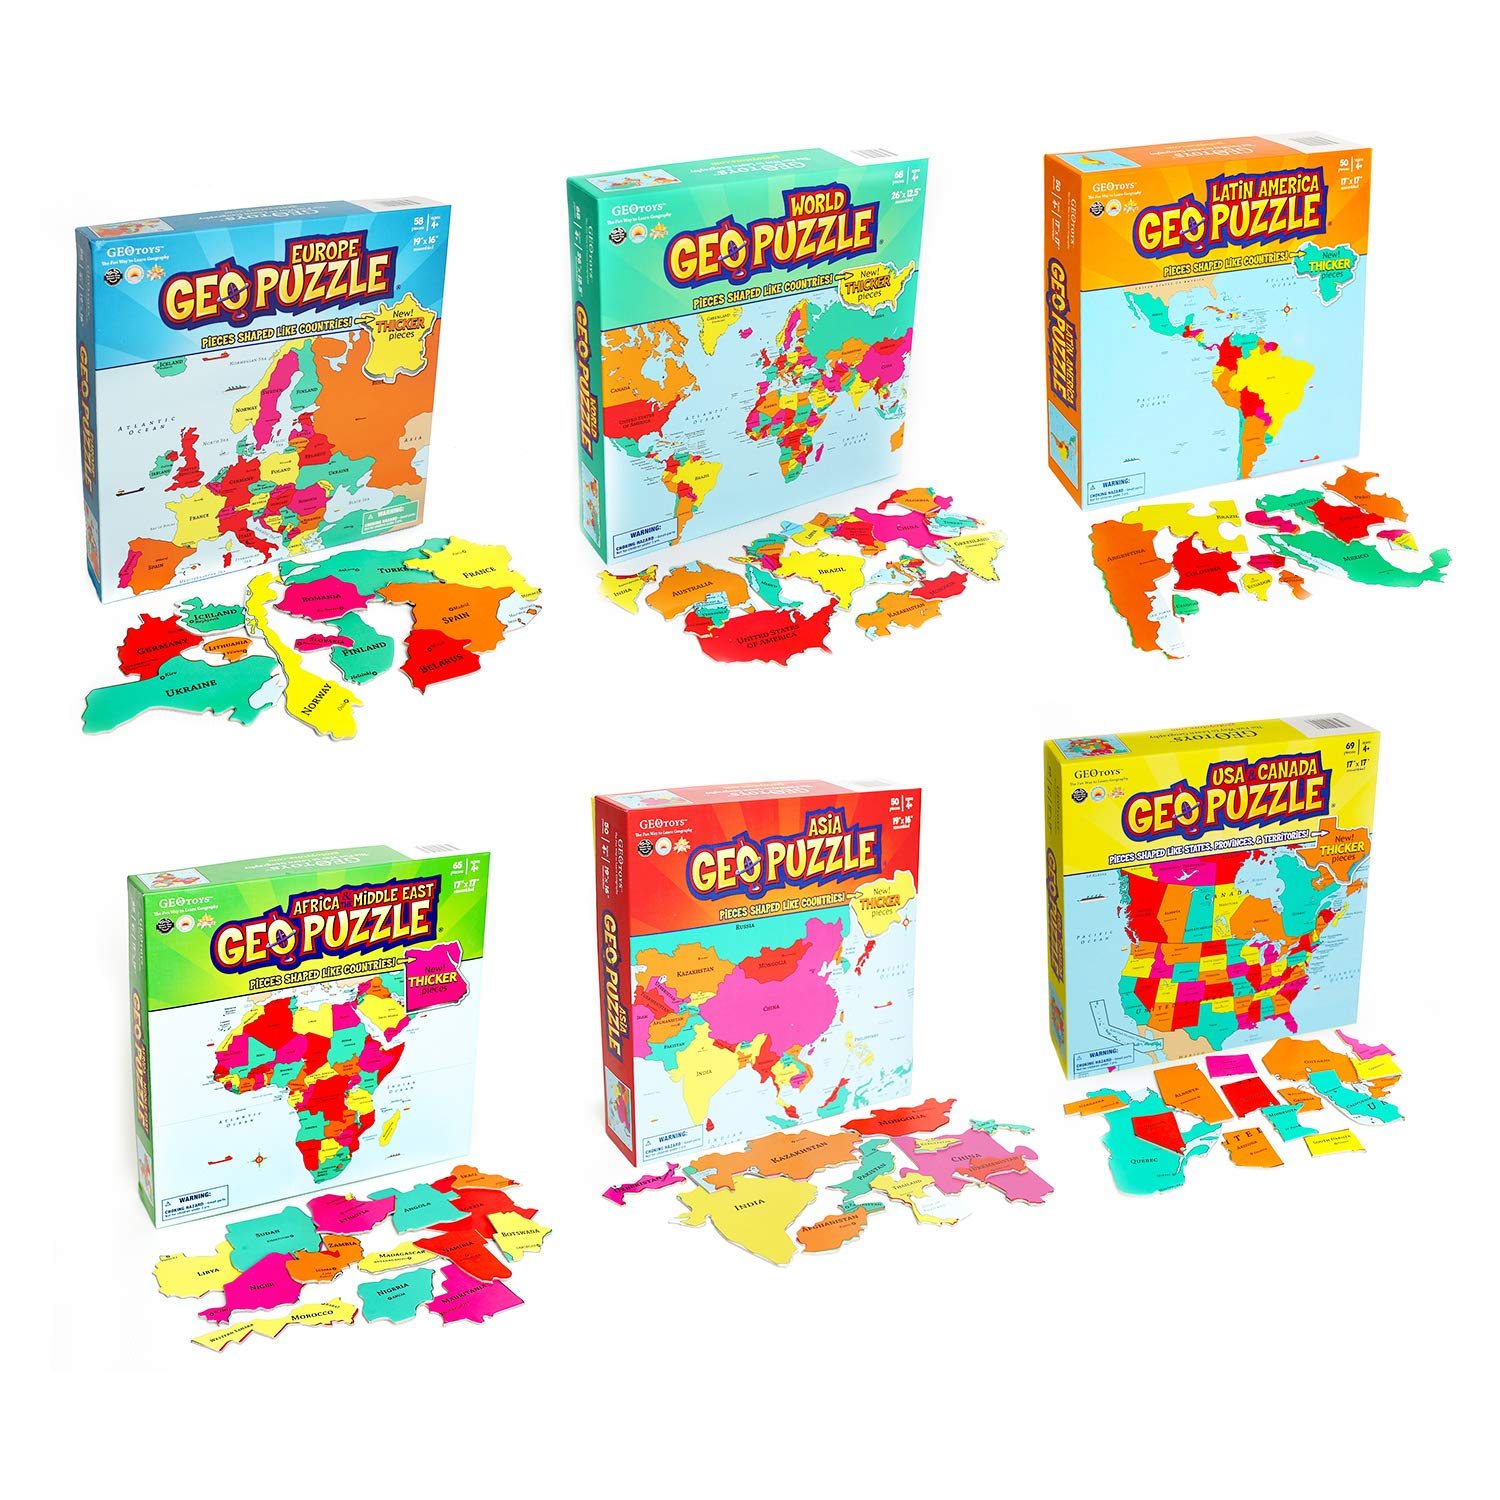 GeoToys - Set of 6 GeoPuzzles in Individual Boxes - Educational Kid Toys for Boys and Girls, 50+ Piece Geography Jigsaw Puzzles, Jumbo Size Kids Puzzles - Ages 4 and up by Geotoys